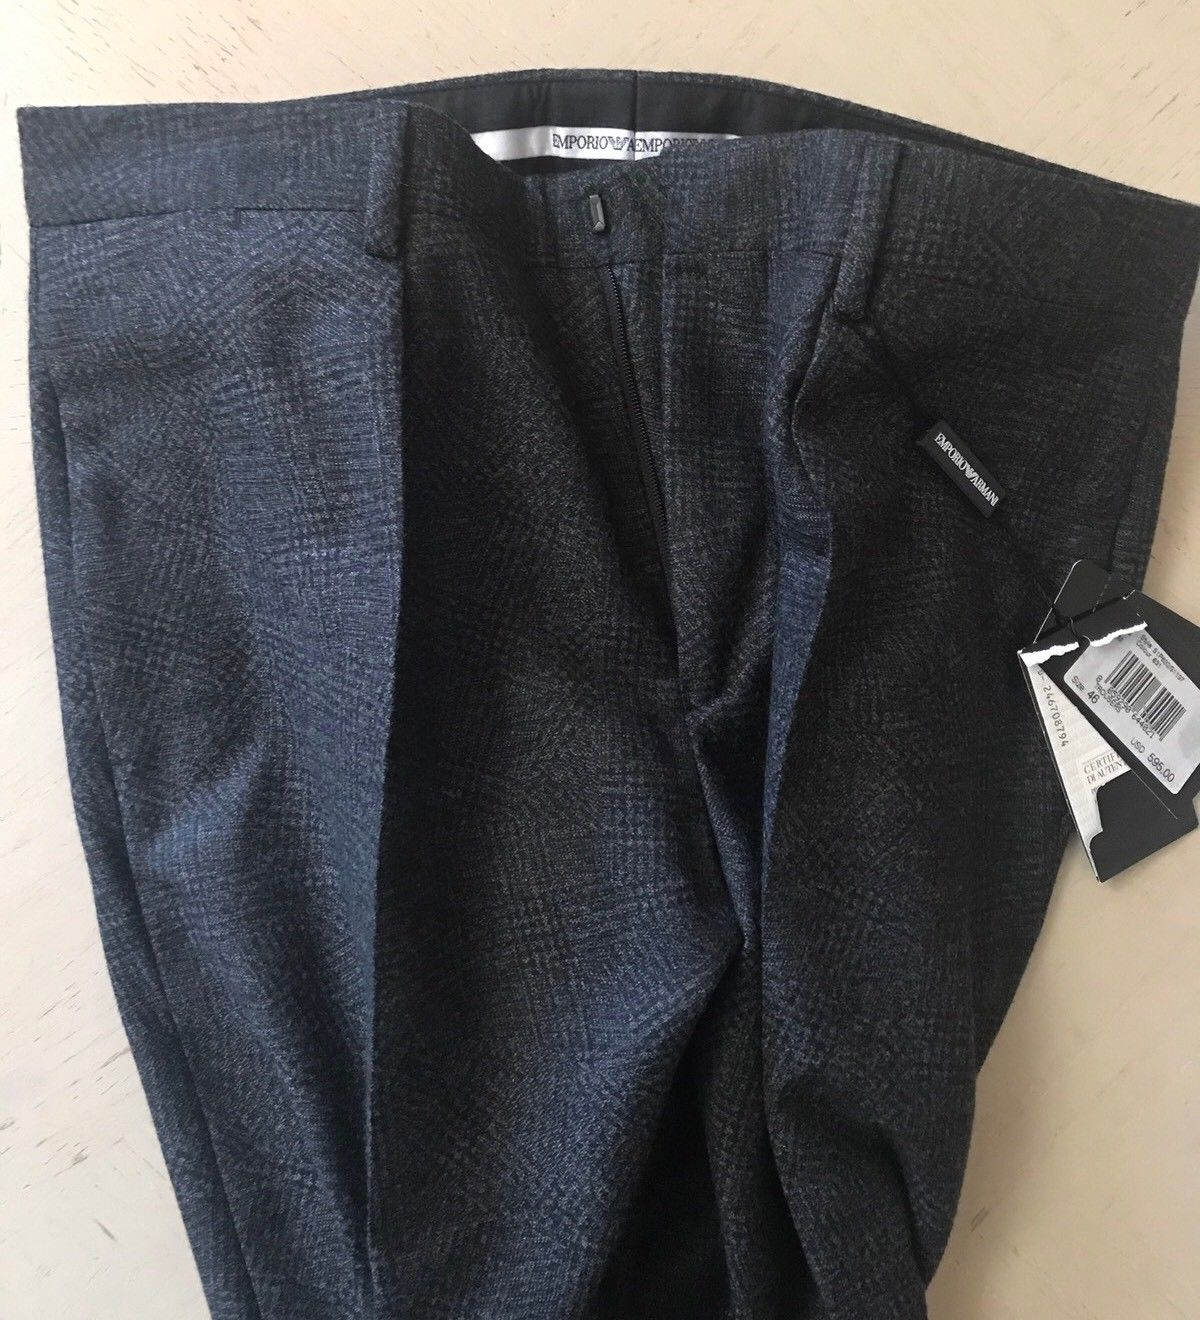 NWT $595 Emporio Armani Mens Dress Pants Dark Gray 30 US ( 46 Eu ) Italy - BAYSUPERSTORE